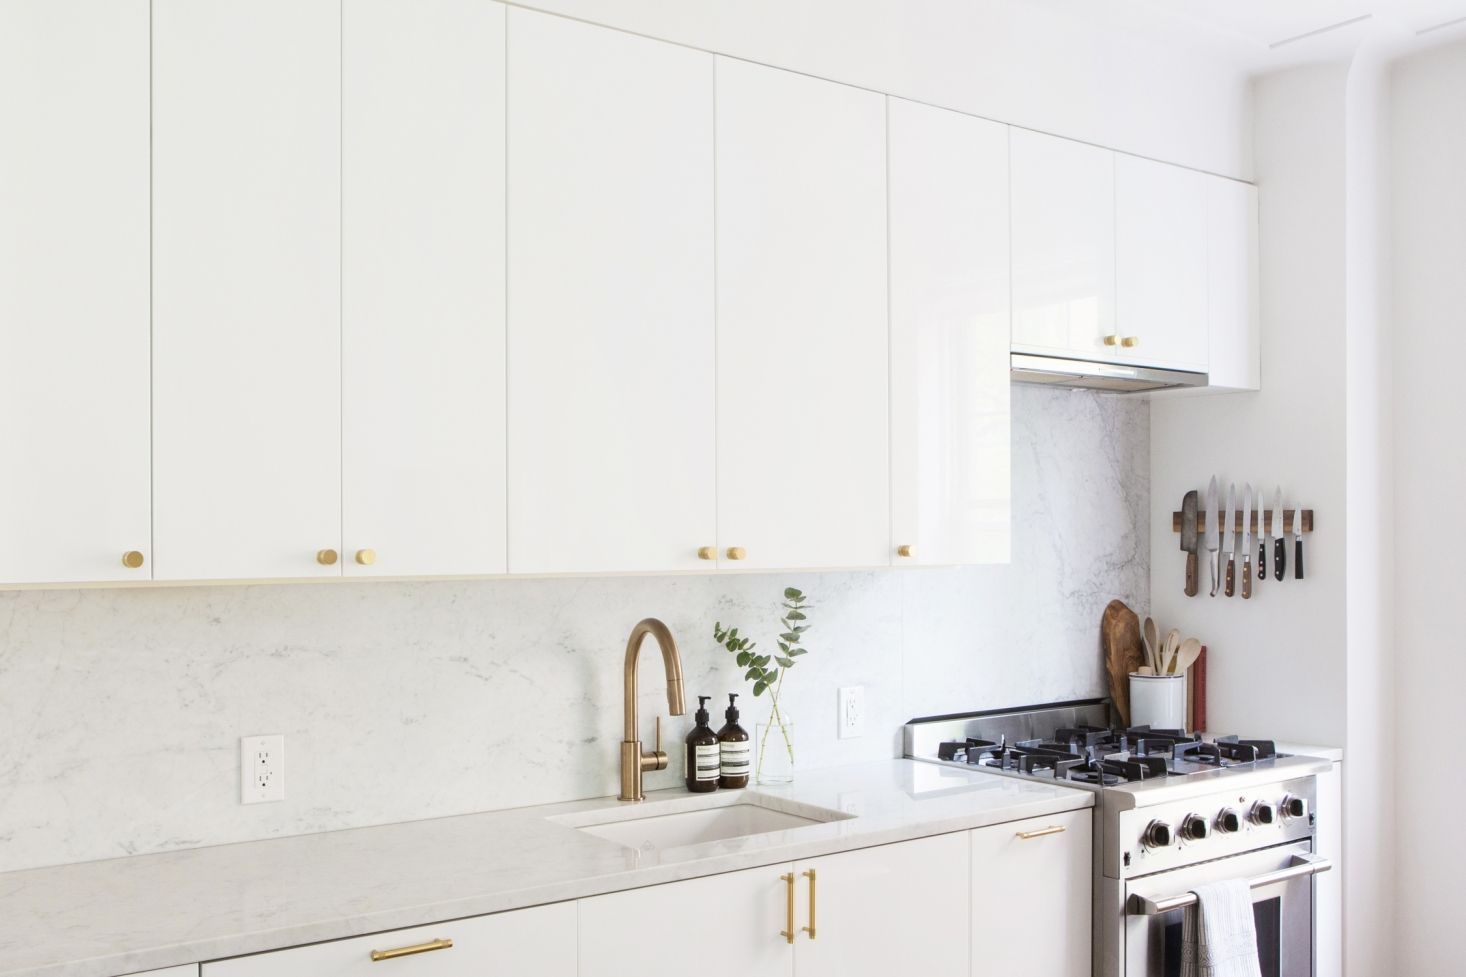 The Kitchen Is A Modified Ikea System With Ringhult Glossy White Cabinet  Doors And Brass Hardware From Rejuvenation.